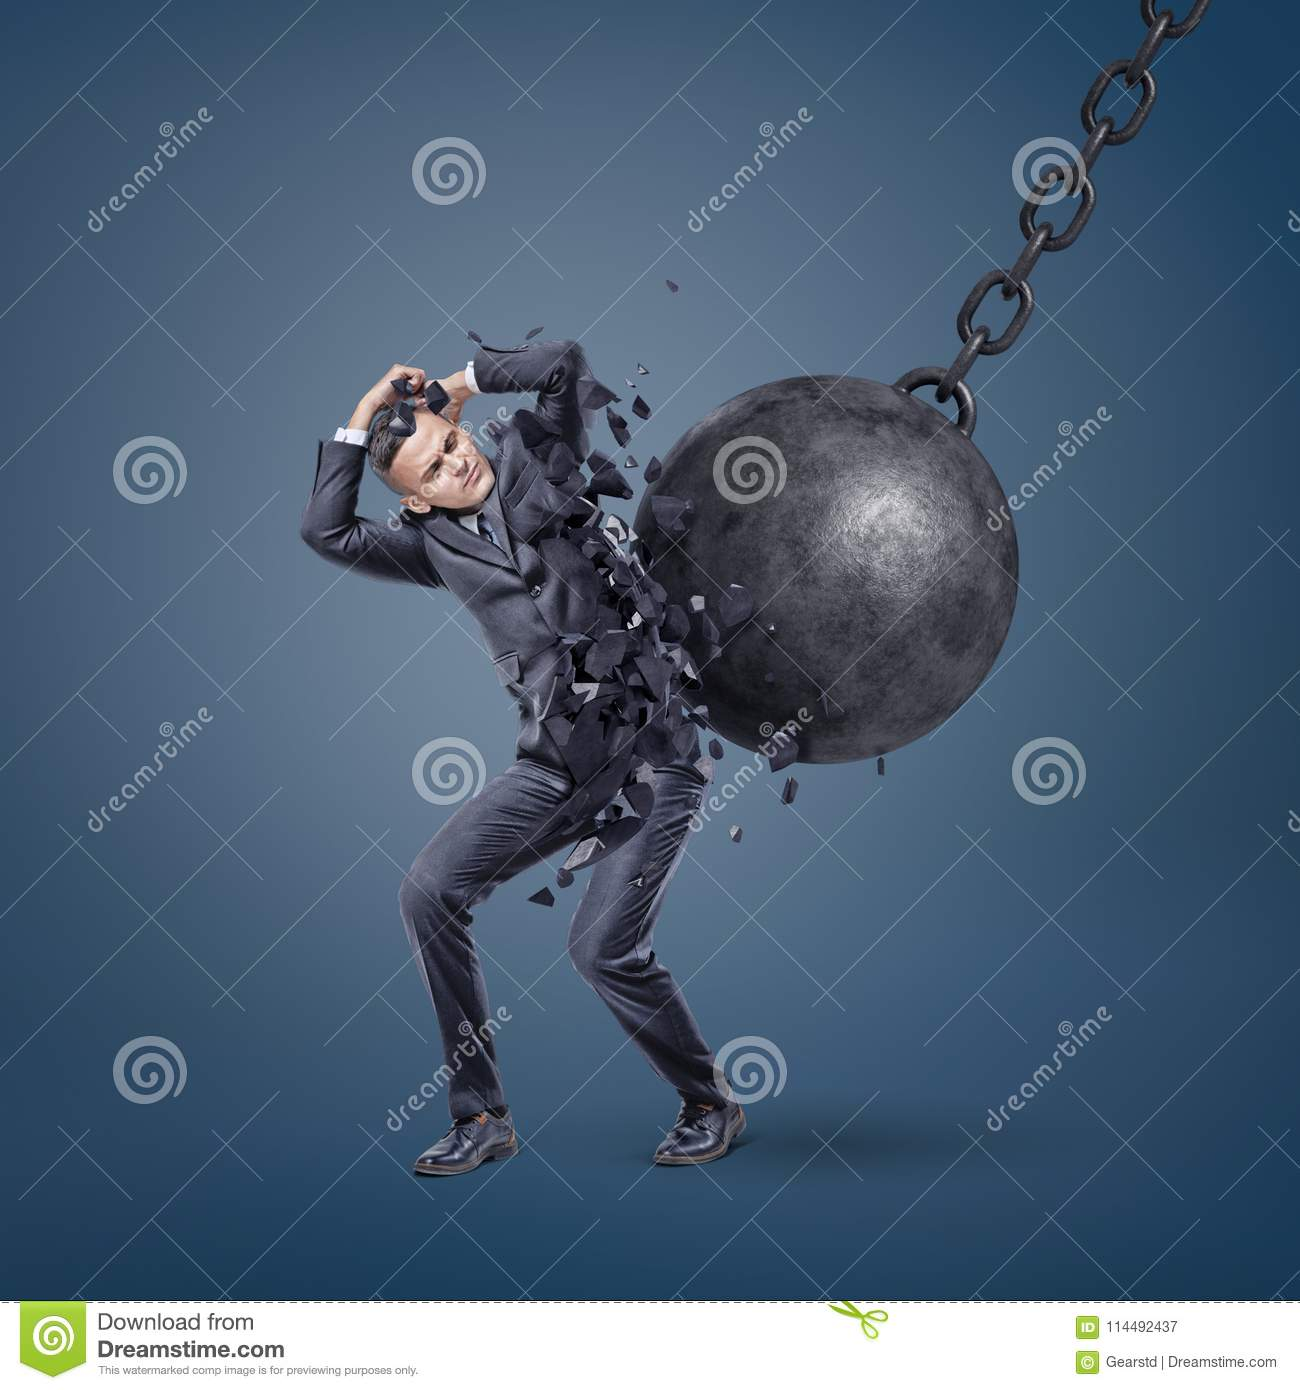 A giant wrecking ball hits a scared businessman and breaks him in pieces.